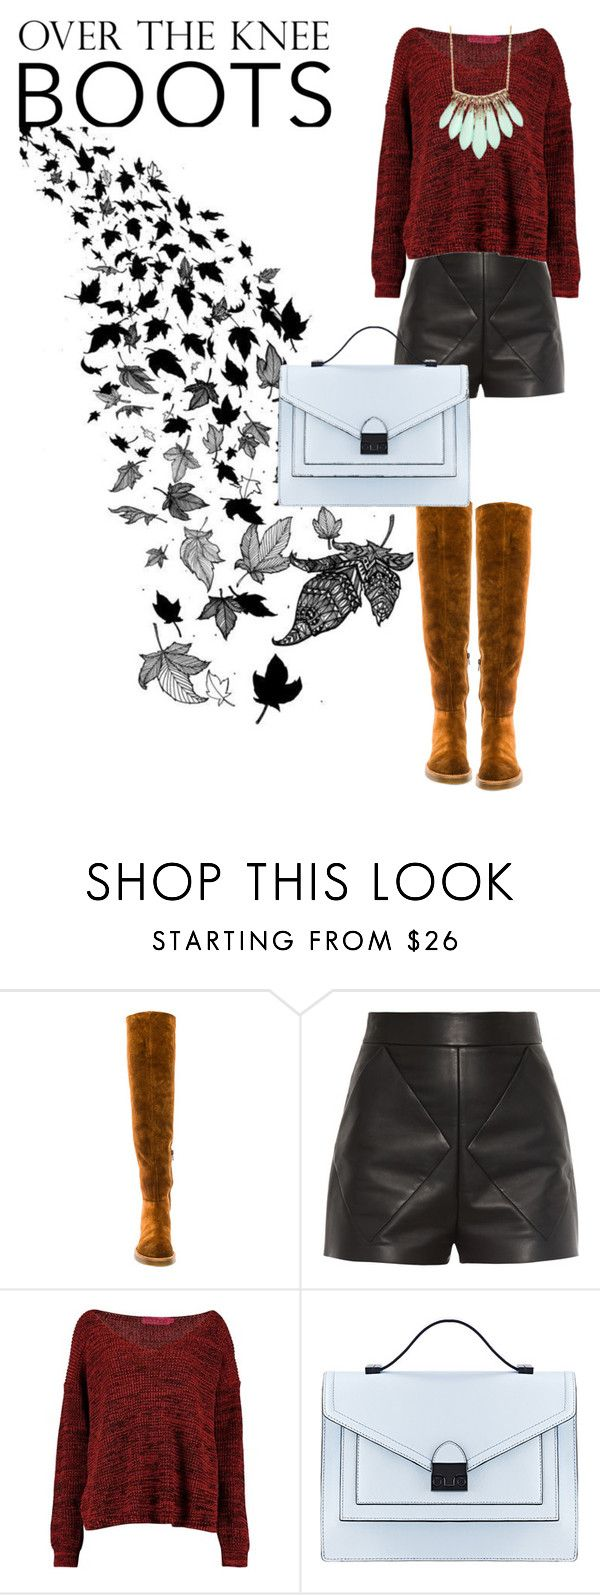 Rock on: Over the knee Boots by adriana-claudia on Polyvore featuring Balenciaga, Jeffrey Campbell, Loeffler Randall, Alexis Bittar and OverTheKneeBoots